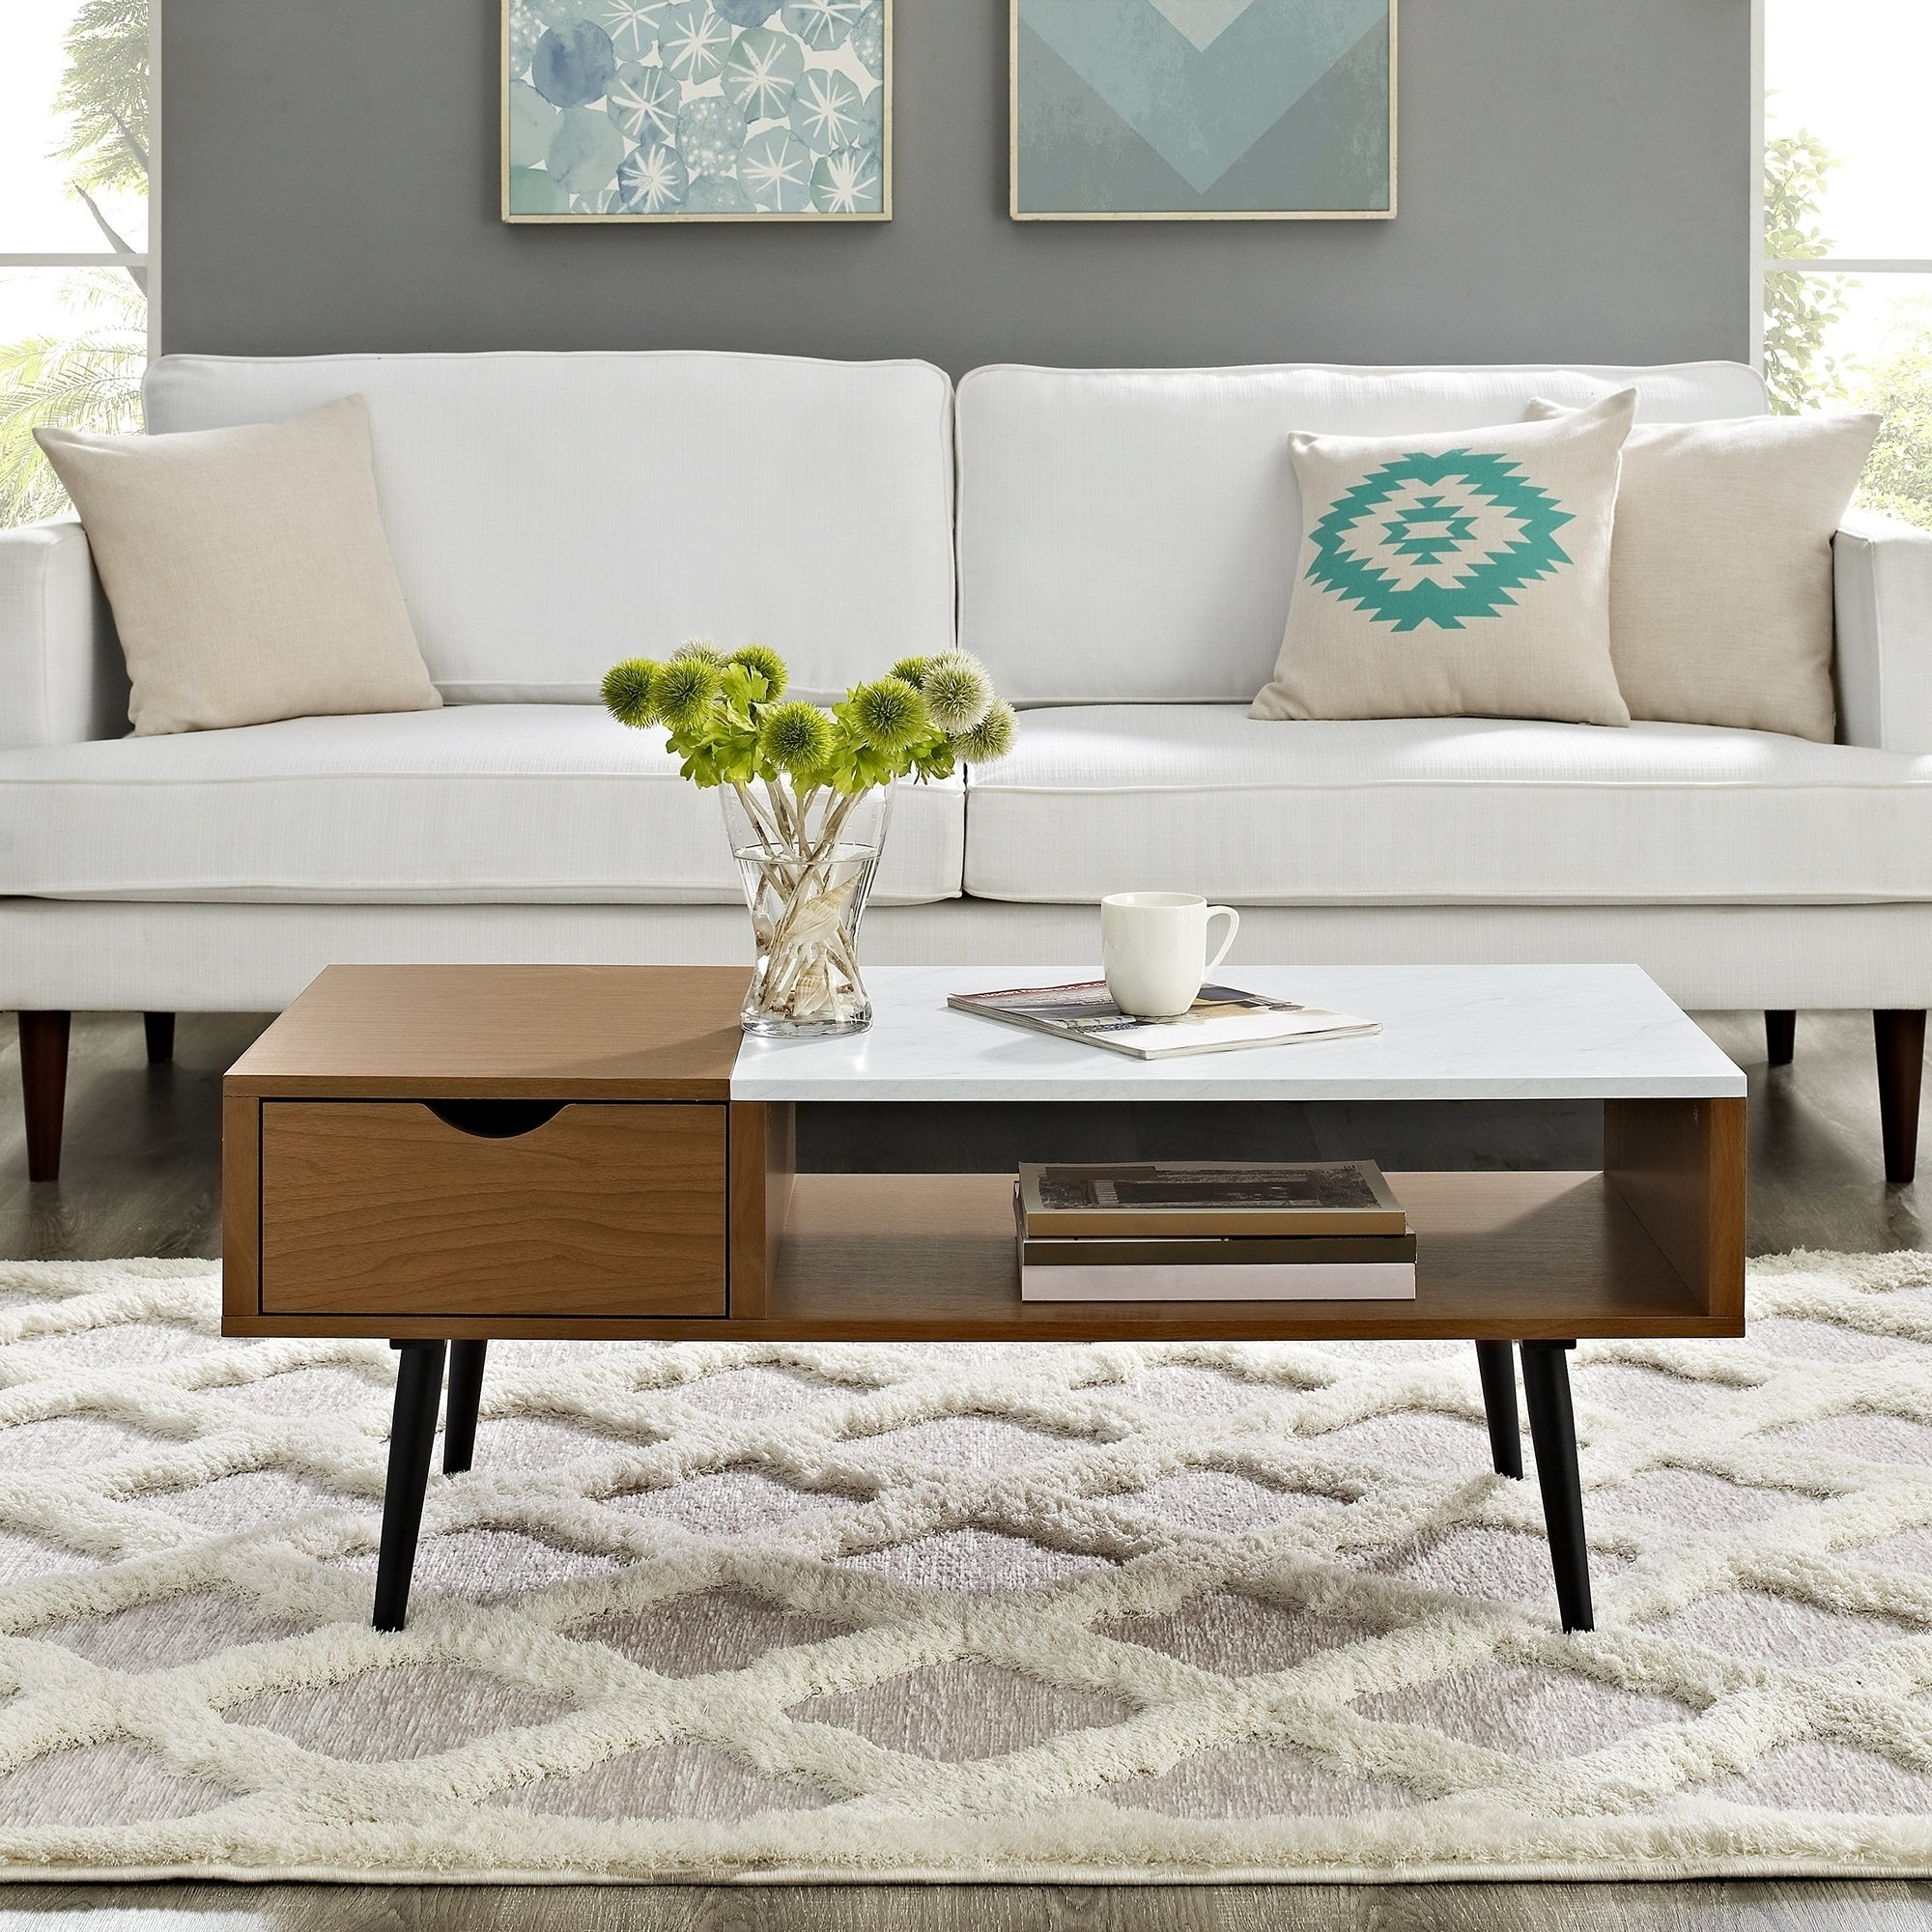 Superieur Shop Mid Century Modern 42 Inch Wood And Faux Marble Coffee Table   Free  Shipping Today   Overstock.com   20479263